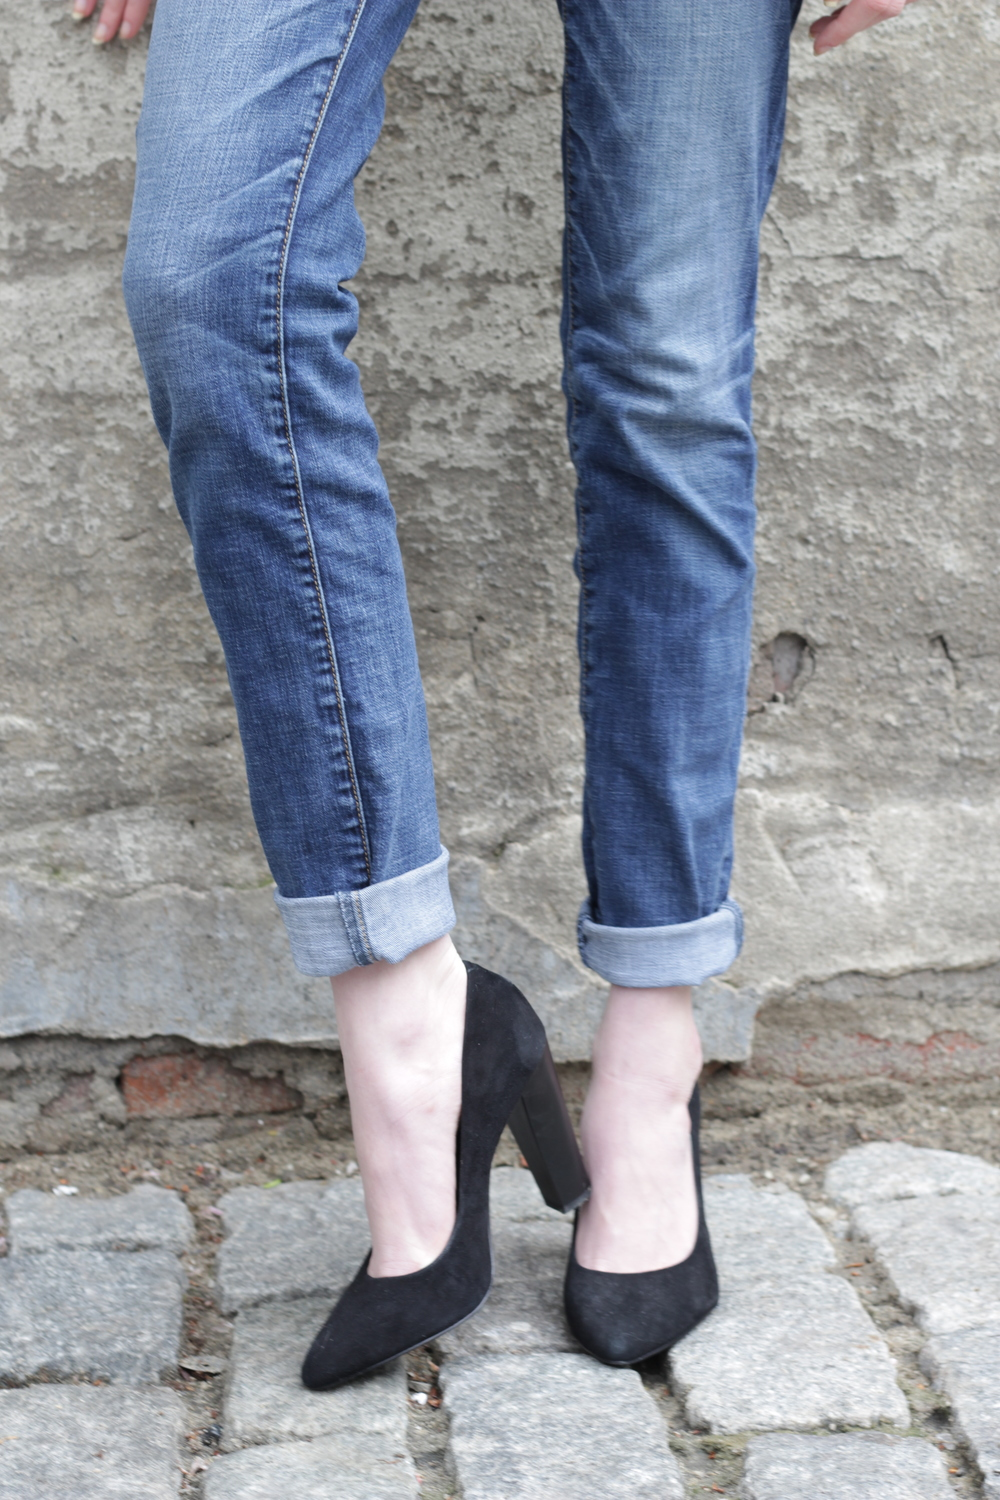 BCBG black pointed toe pumps, american eagle jeans